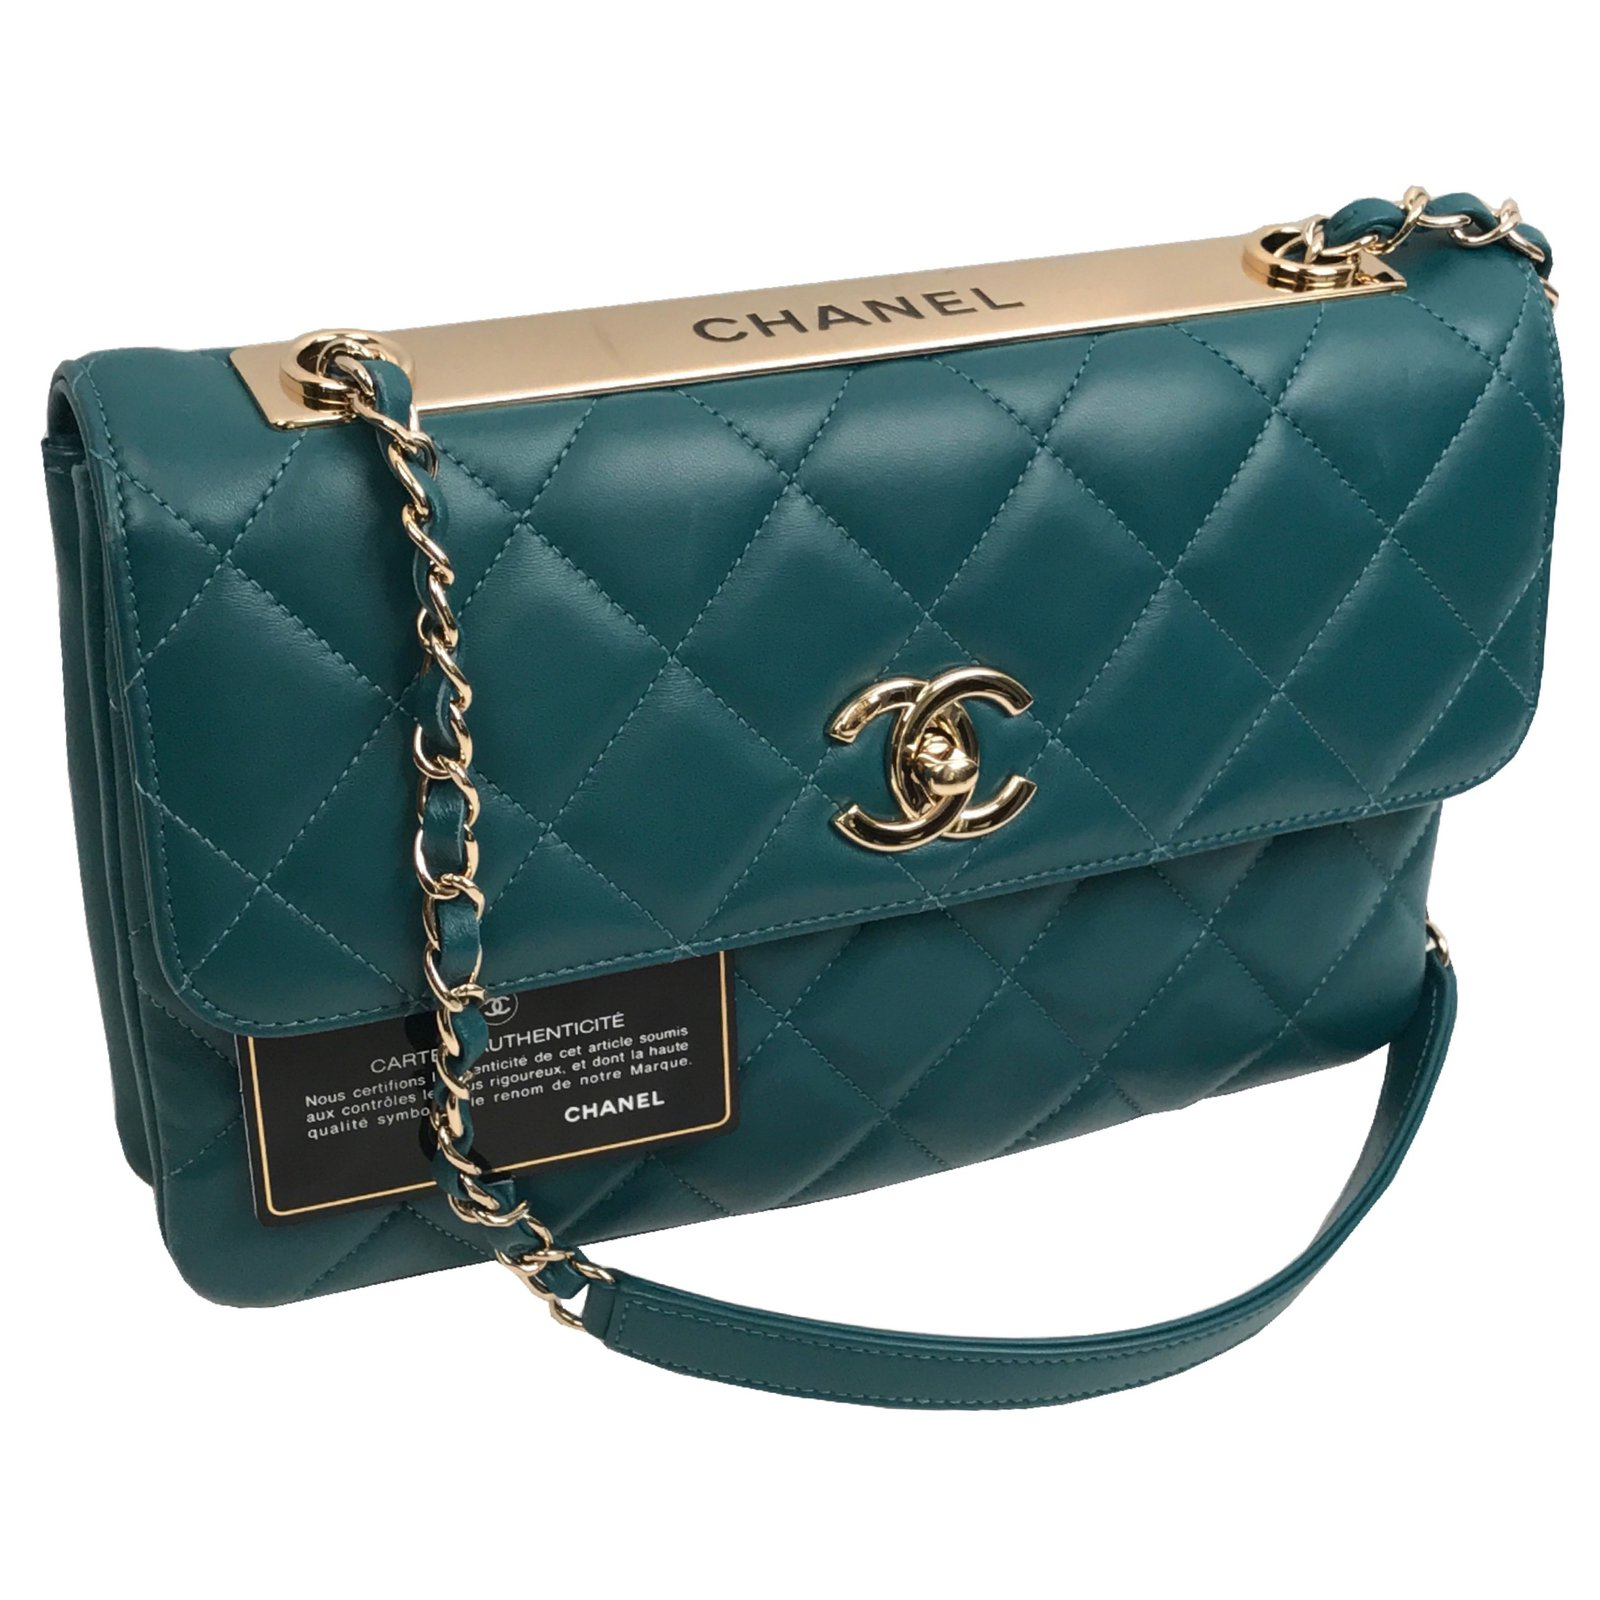 77cb4c8f90 Chanel CHANEL QUILTED LAMBSKIN TRENDY CC FLAP BAG with gold hardware.  Handbags Leather Blue ref